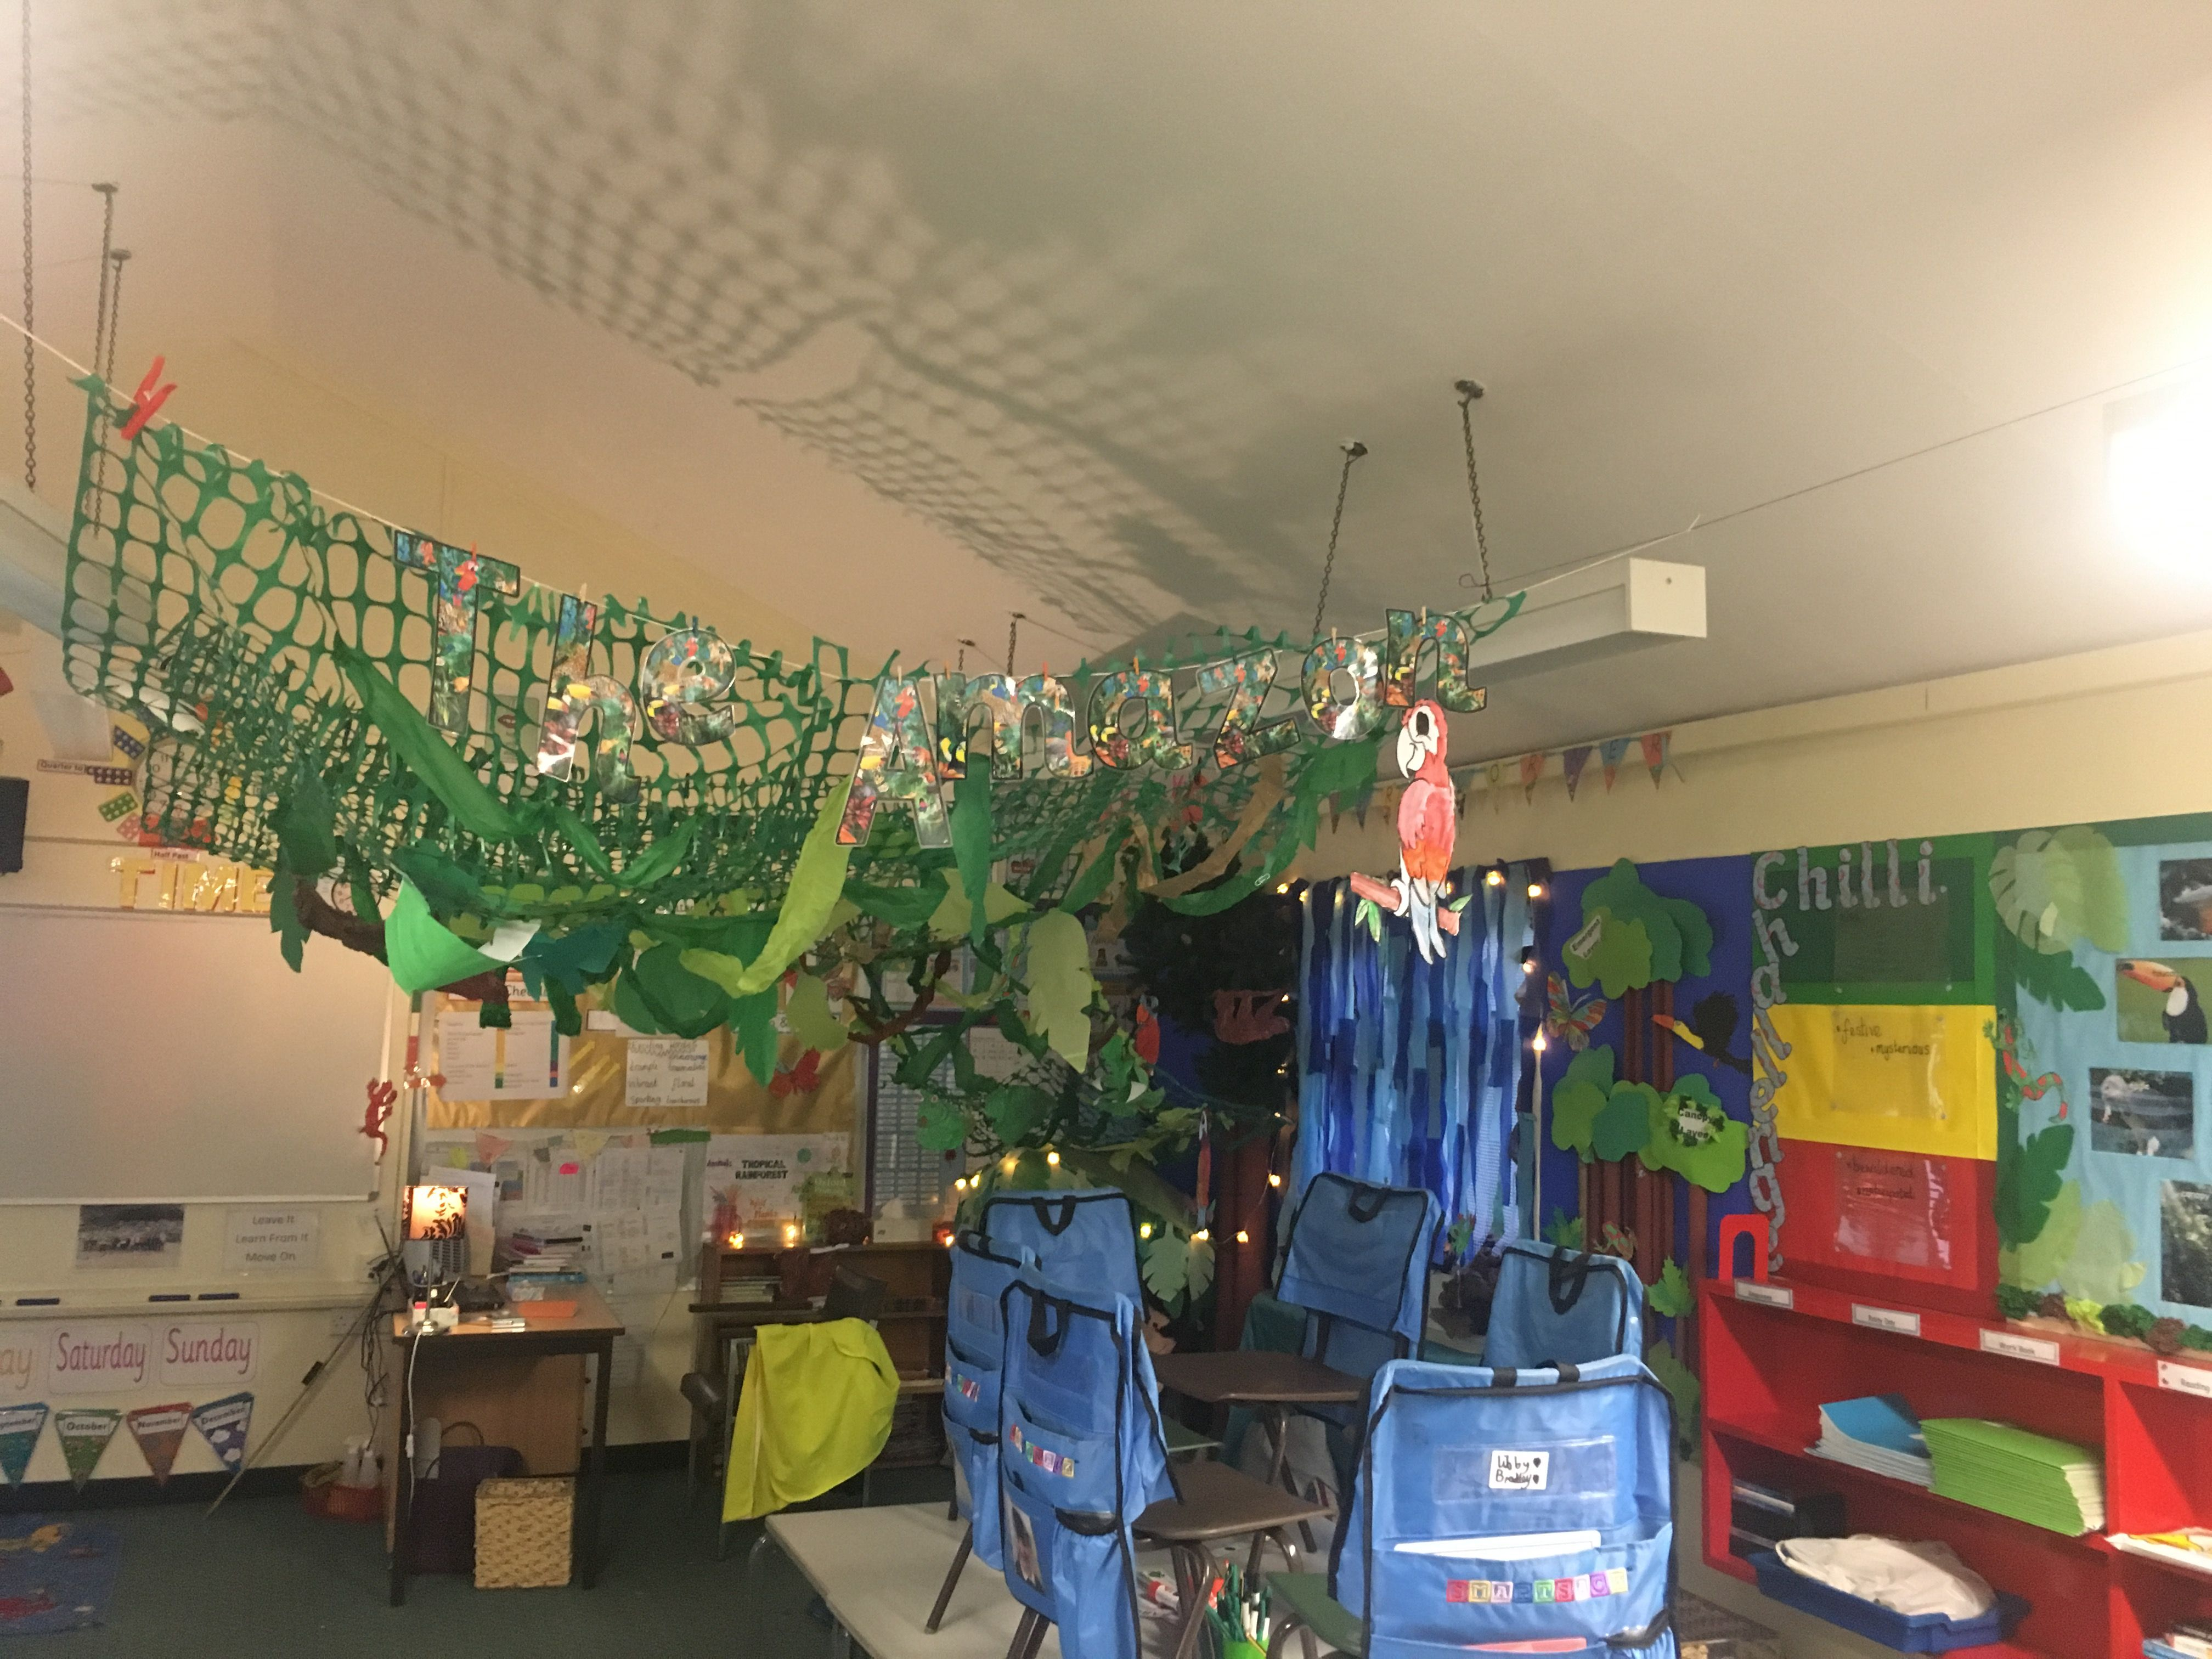 Year 3 classroom rainforest canopy layer hanging down with netting and tissue paper. The children & Year 3 classroom rainforest canopy layer hanging down with netting ...